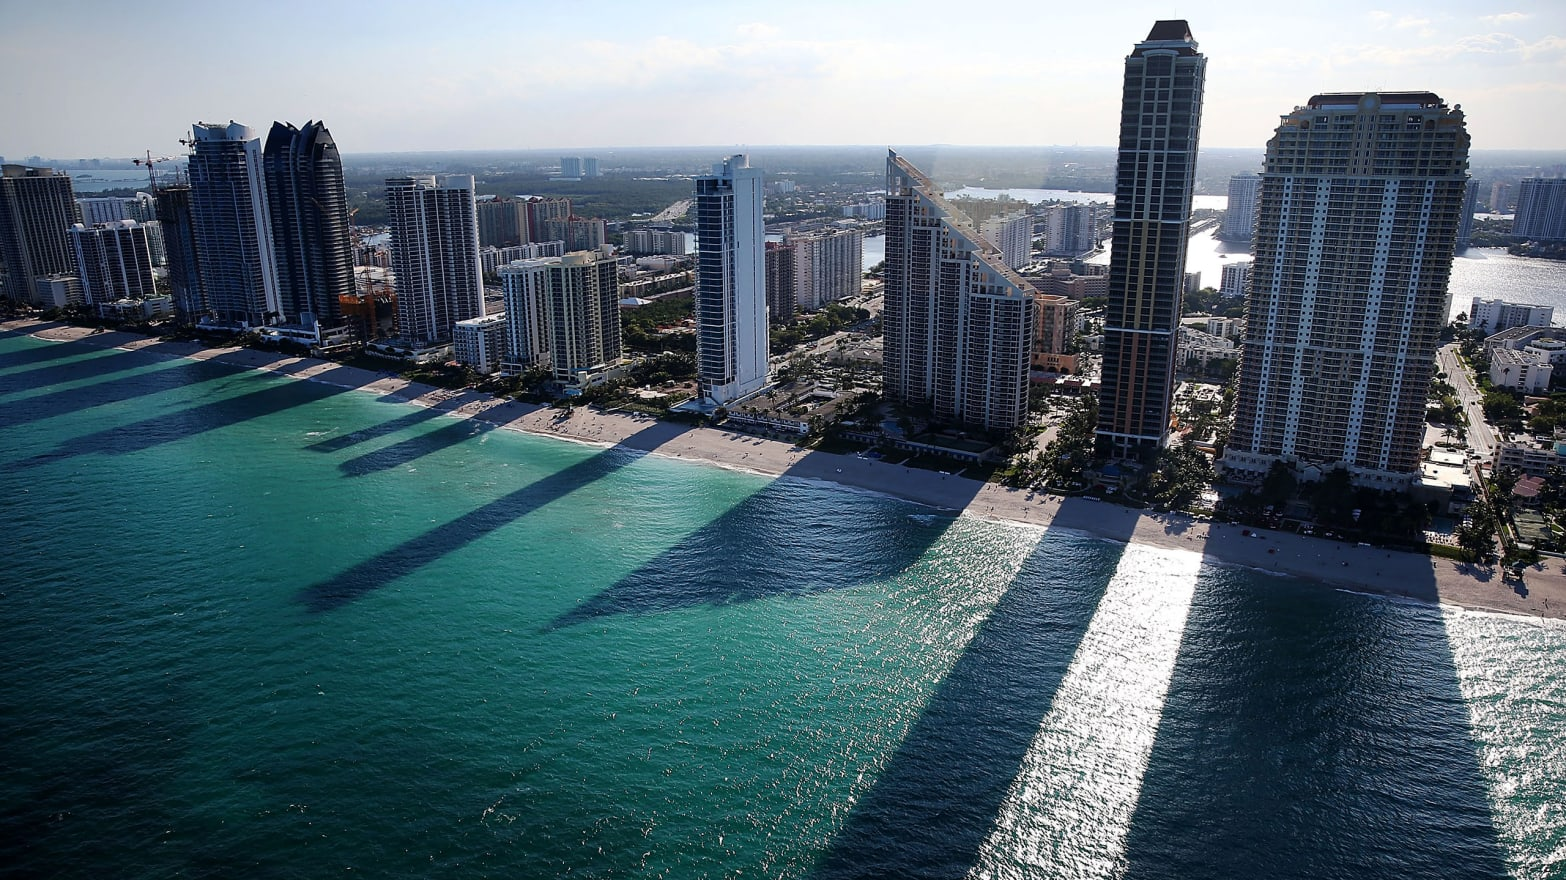 Collapse Of Florida Condo Boom >> Luxury Urban Housing Built On A Myth Is About To Take A Big Hit